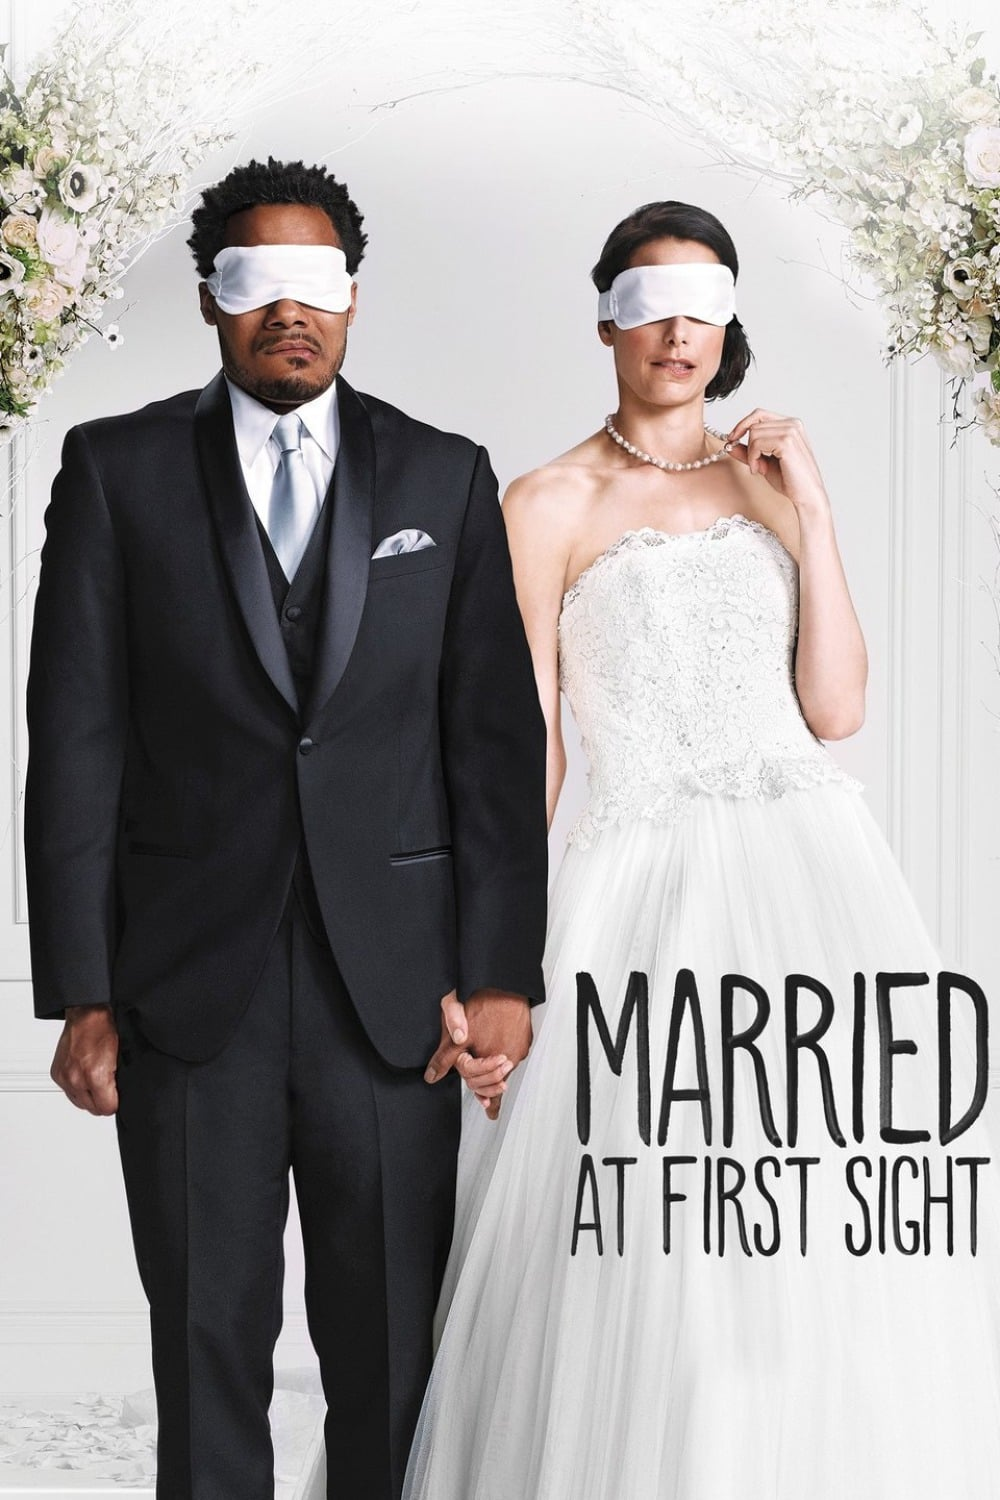 Married at First Sight UK - Season 6 Episode 12